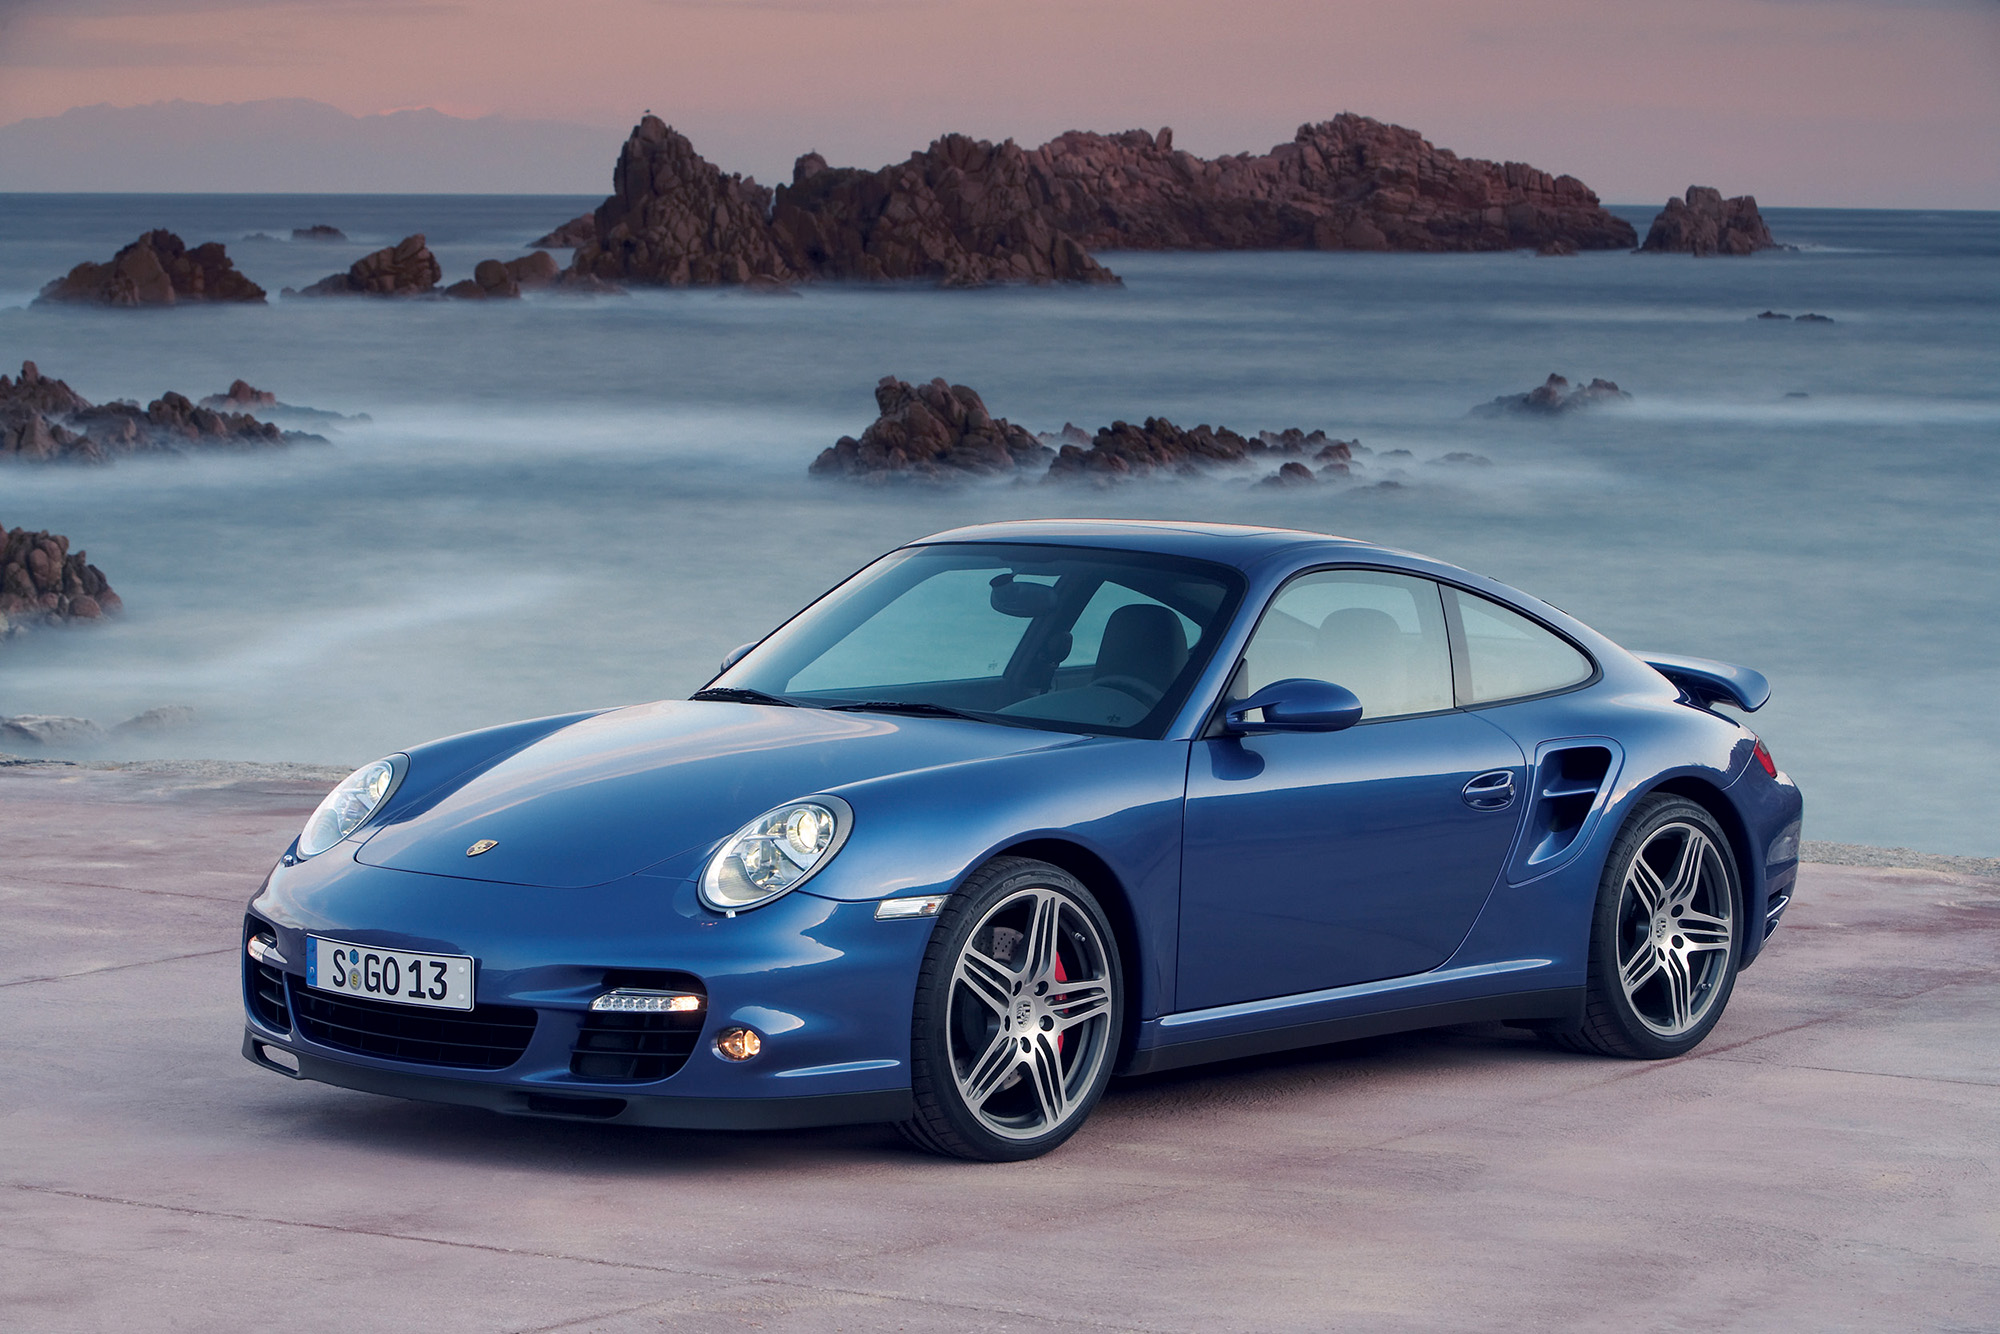 Porsche 911 Turbo 997 Picture 40747 Porsche Photo HD Style Wallpapers Download free beautiful images and photos HD [prarshipsa.tk]